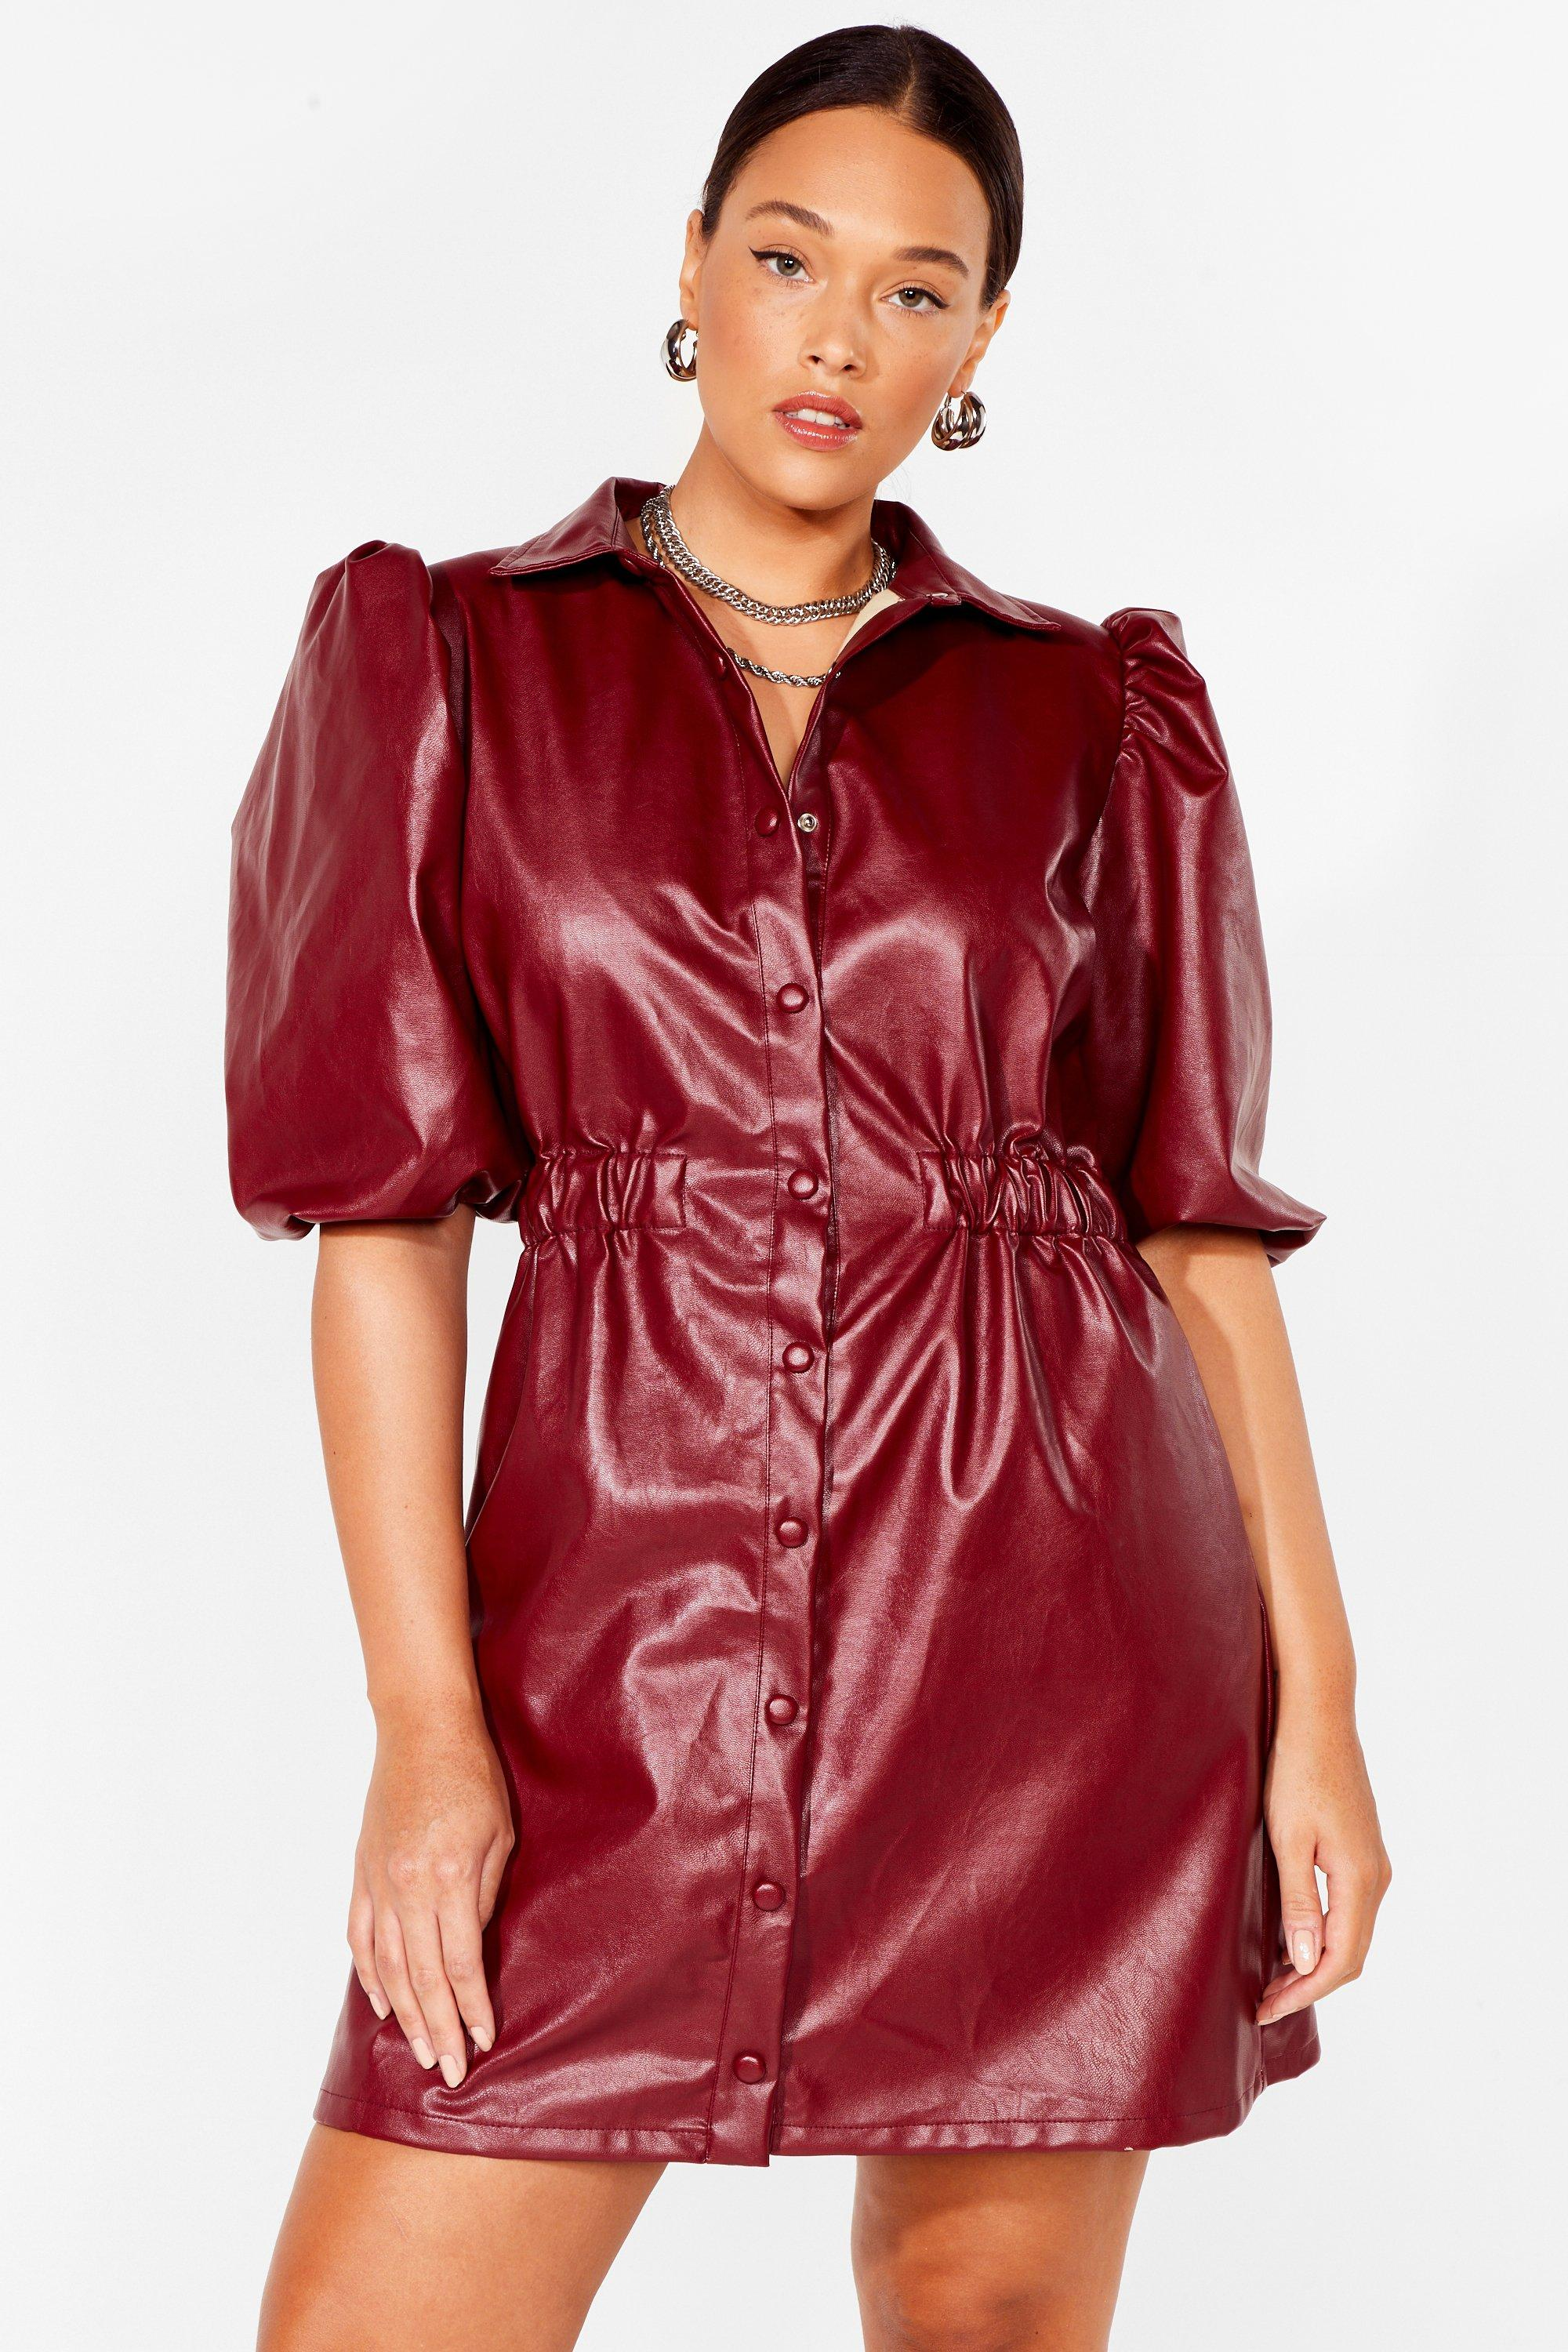 If You Faux Leather Wanna Be in Love Plus Dress 19